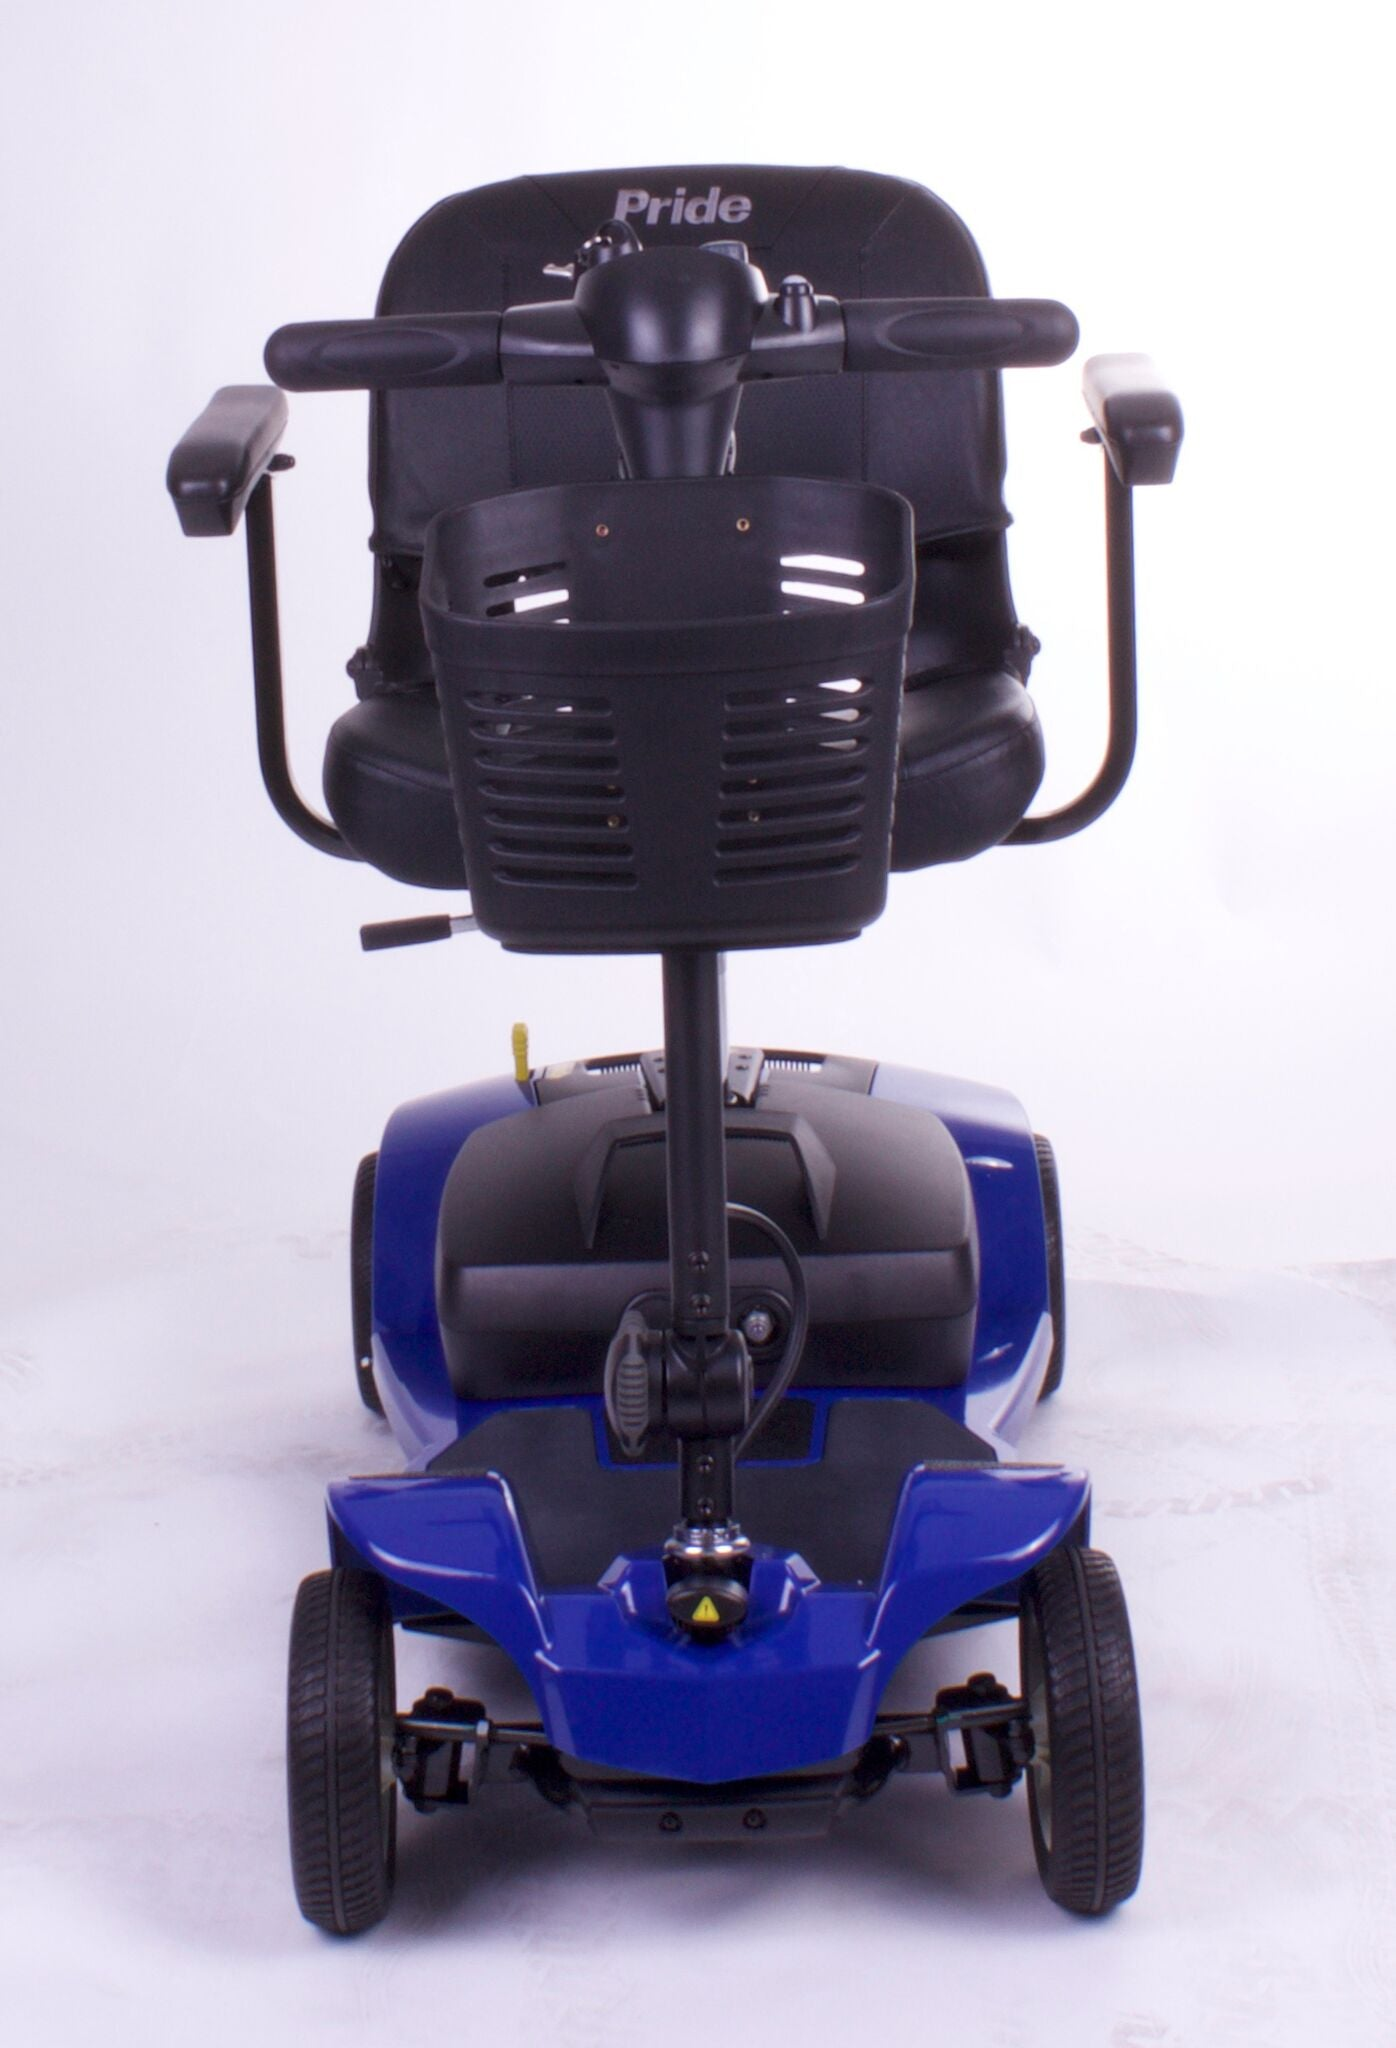 Pride Apex Lite Lightweight 4mph Boot Scooter